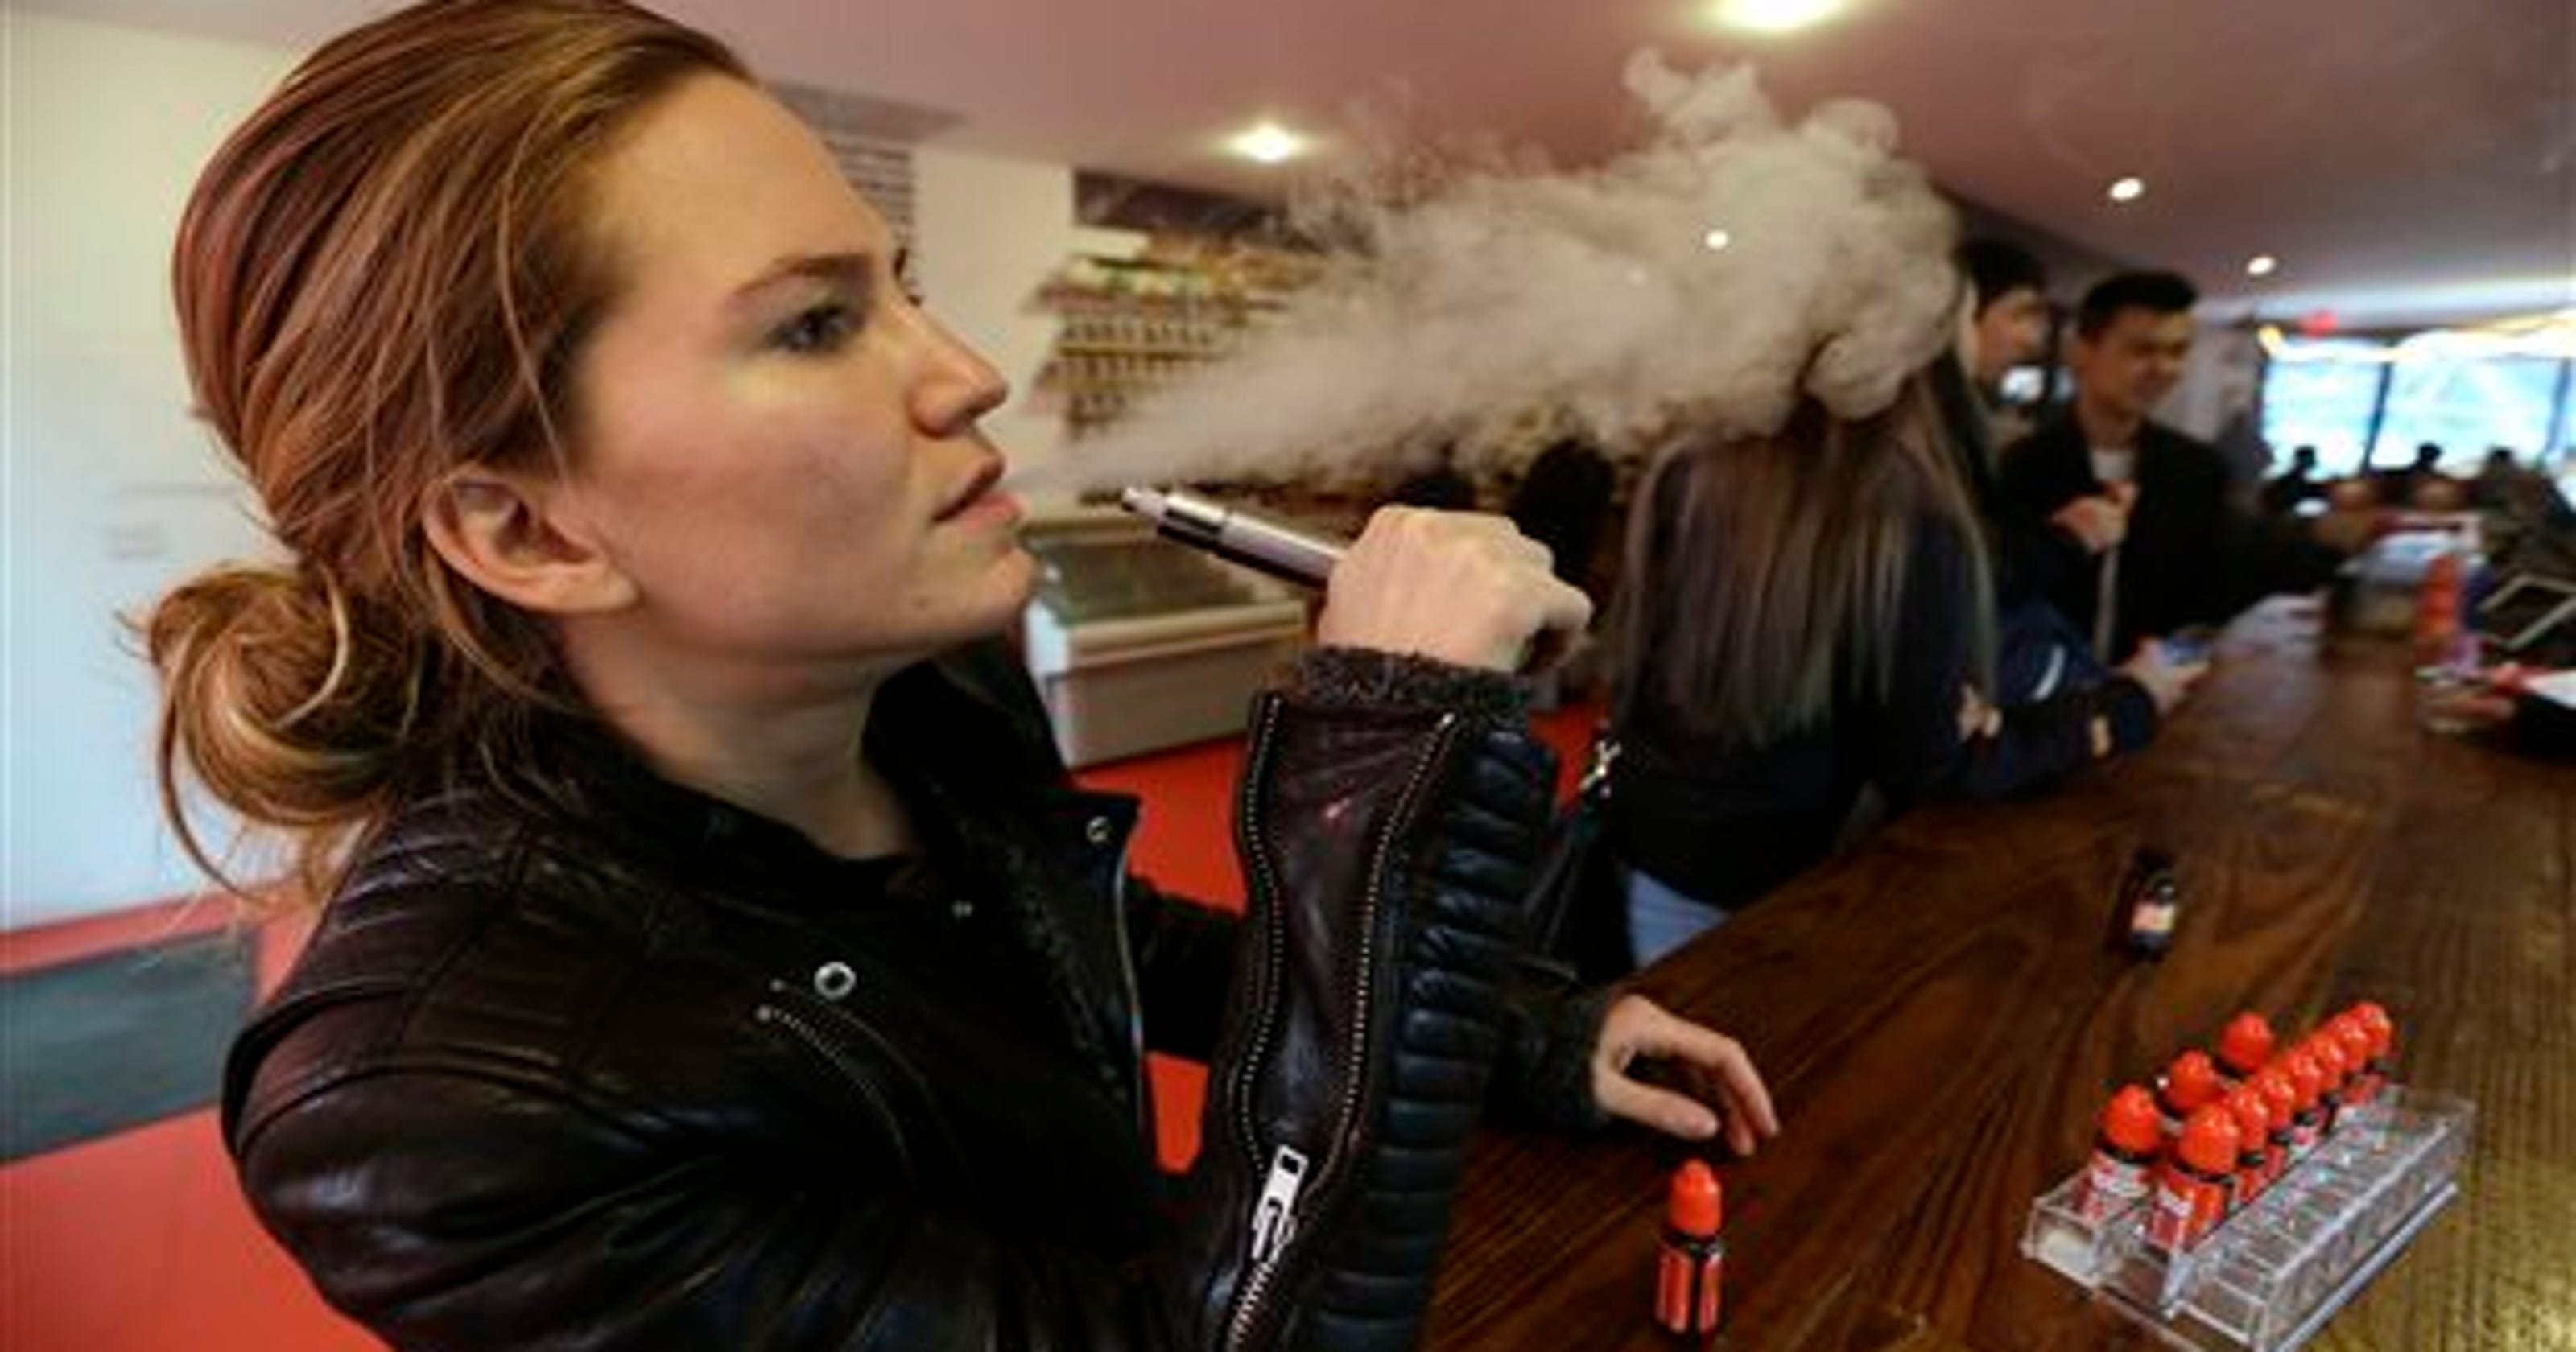 Vaping leaves cancer-causing chemicals in lungs, study shows